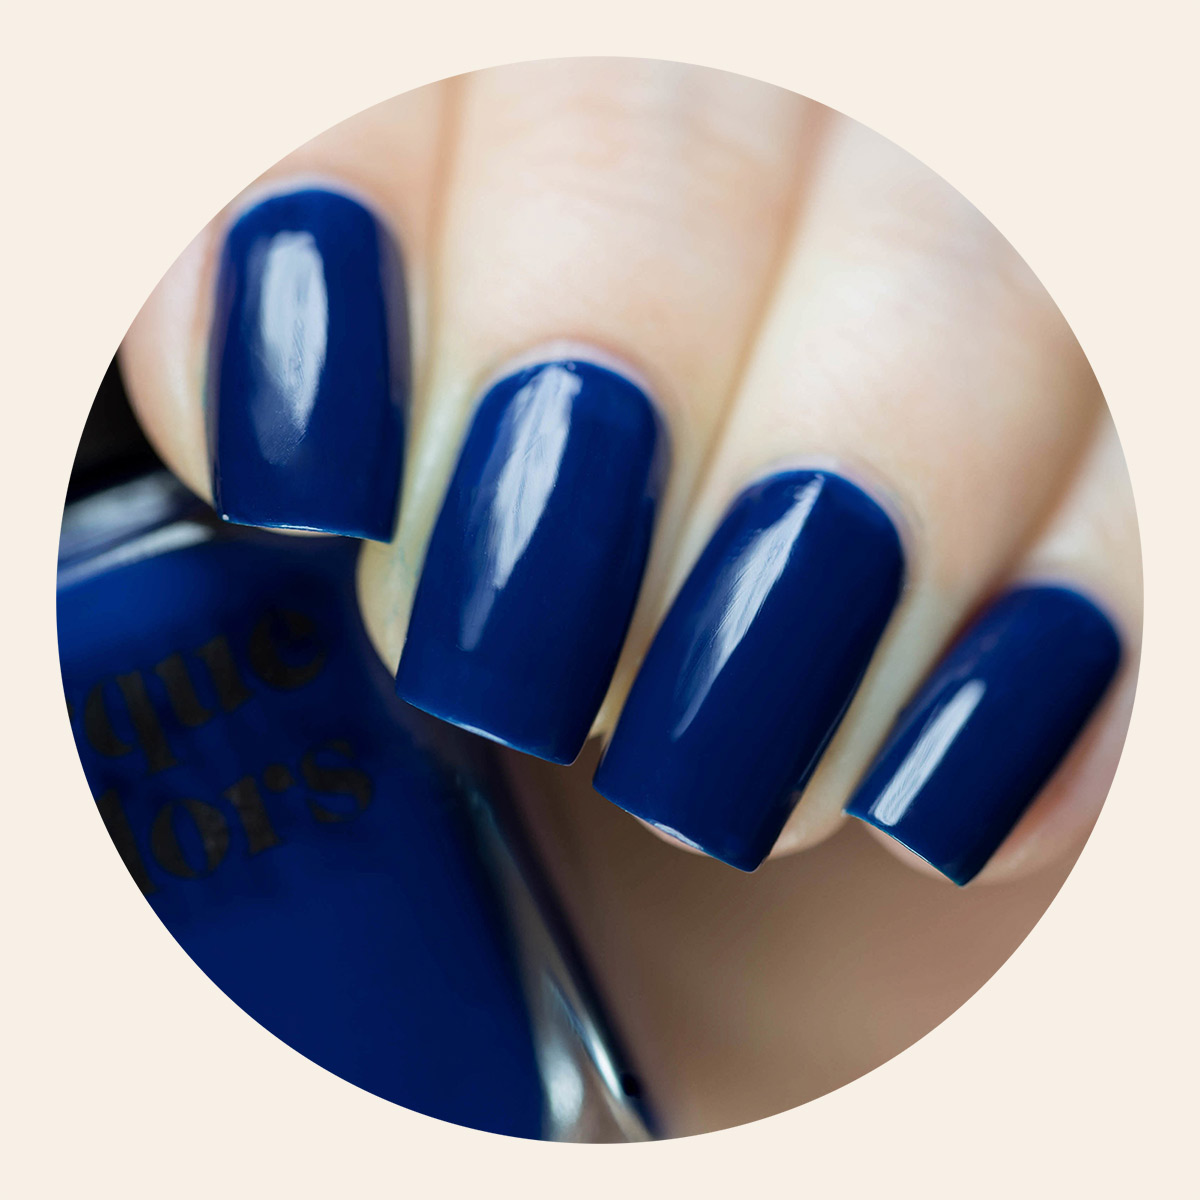 Navy Blue Creme Nail Polish - Cirque Colors Midnight Cowboy